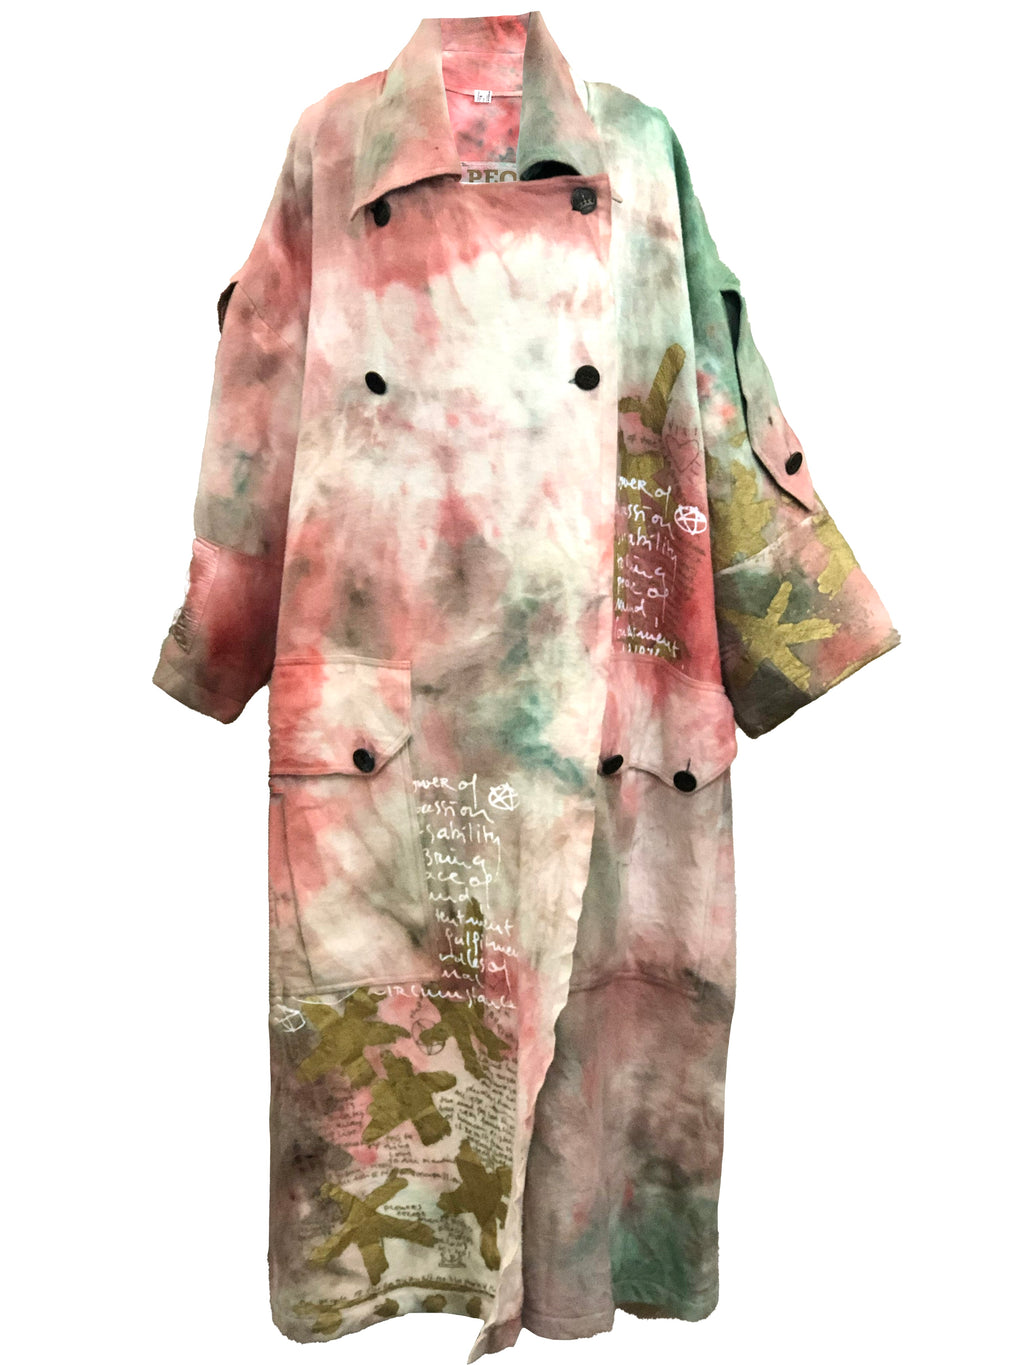 People of the Labyrinth Nubby Wool Tie Dye Great Coat FRONT 1 of 6